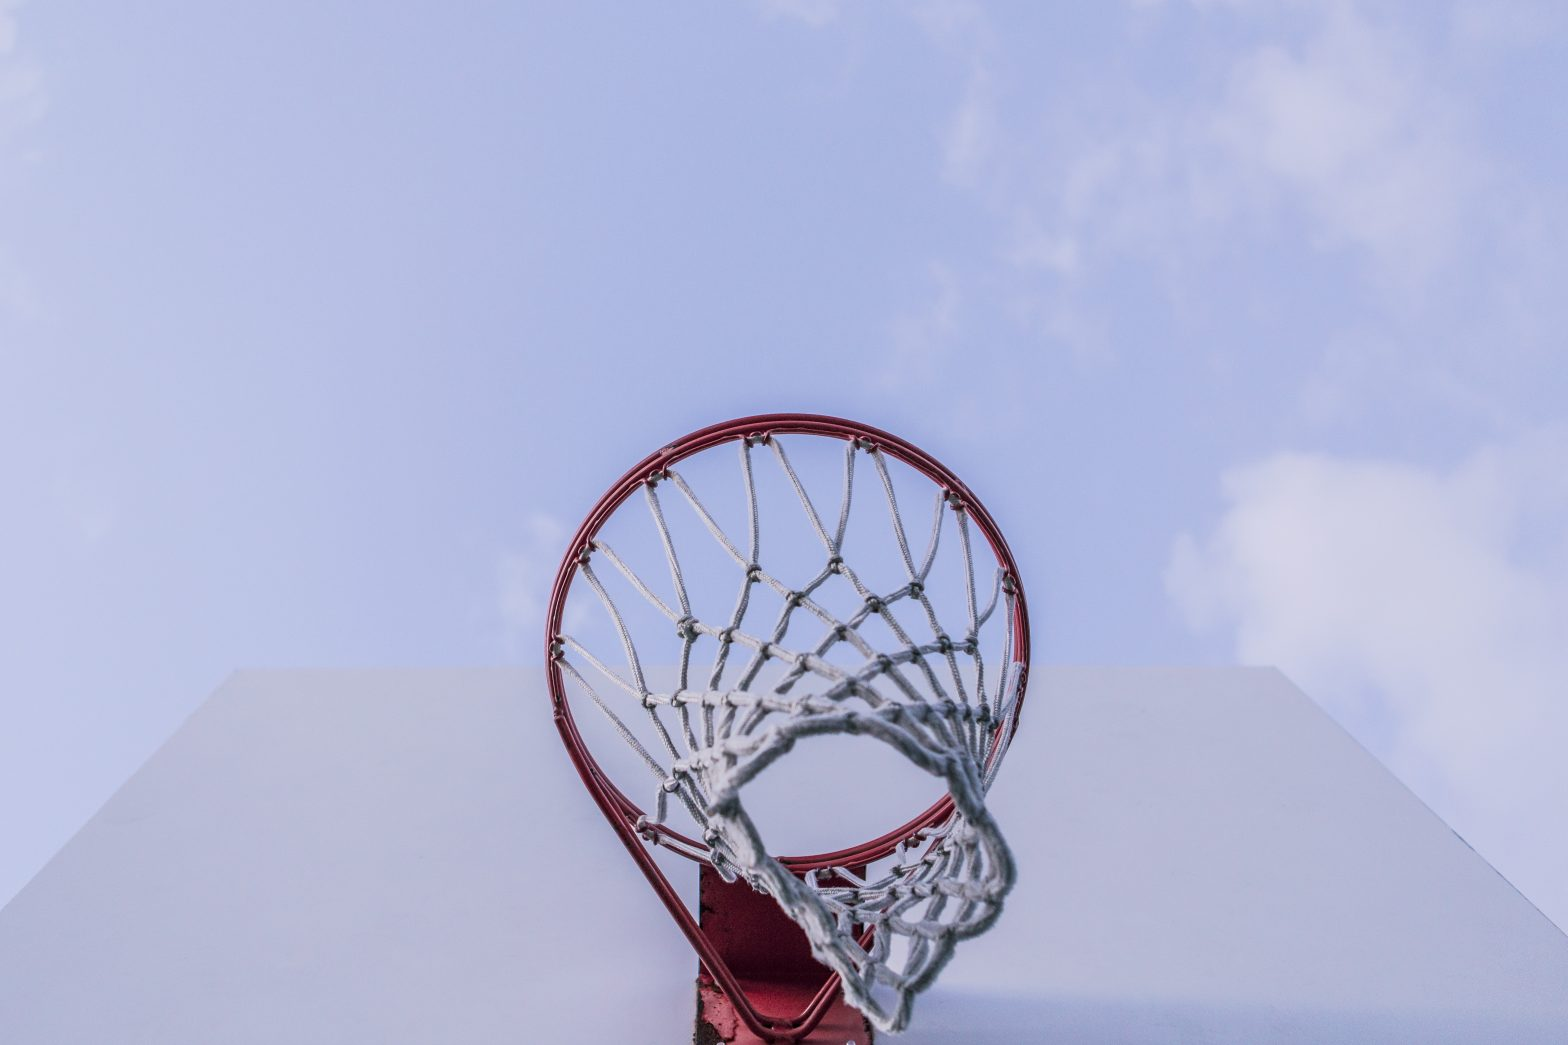 Aim High, basket ball net